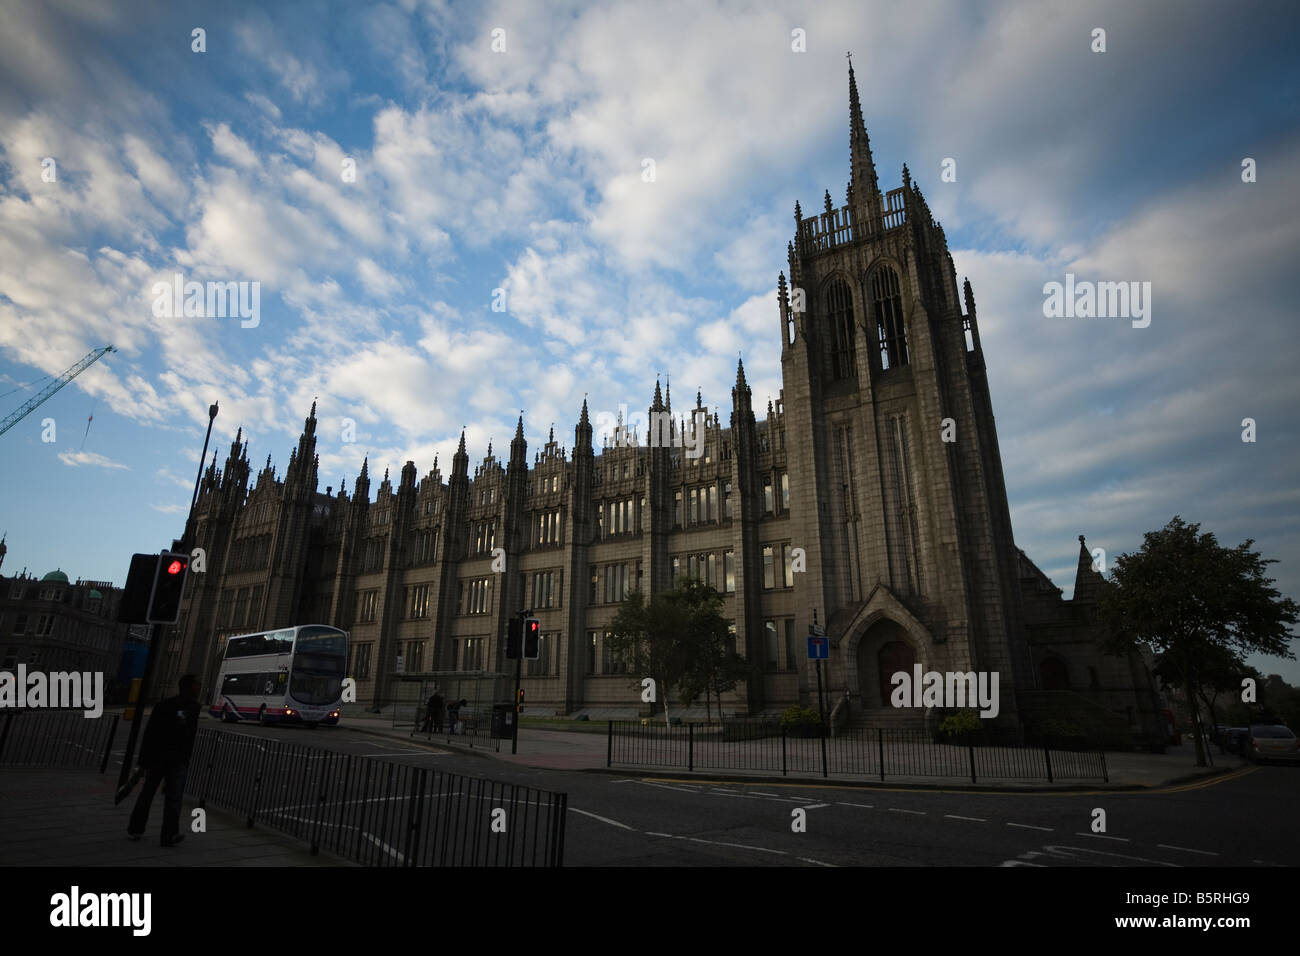 One of the largest granite buildings in the world Aberdeen Marshall s College - Stock Image